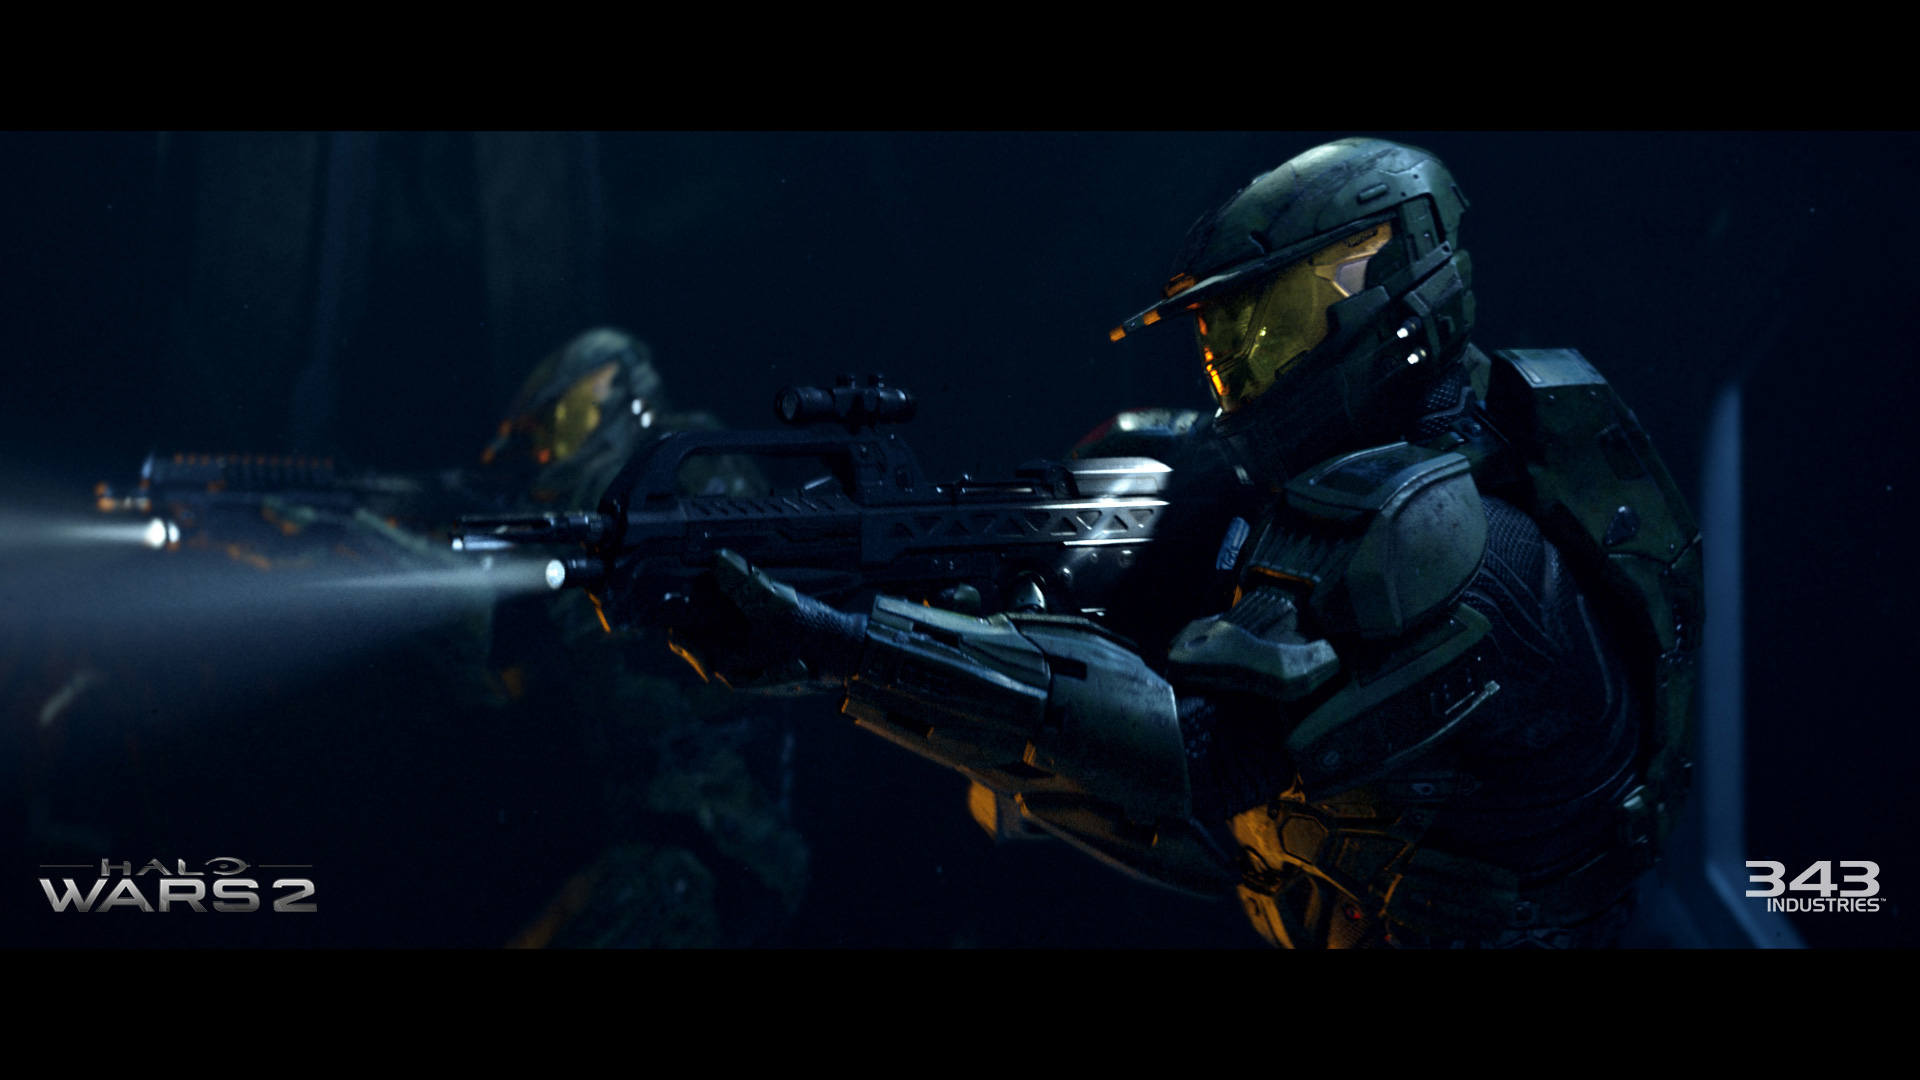 halo wars 2 wallpaper full hd pictures